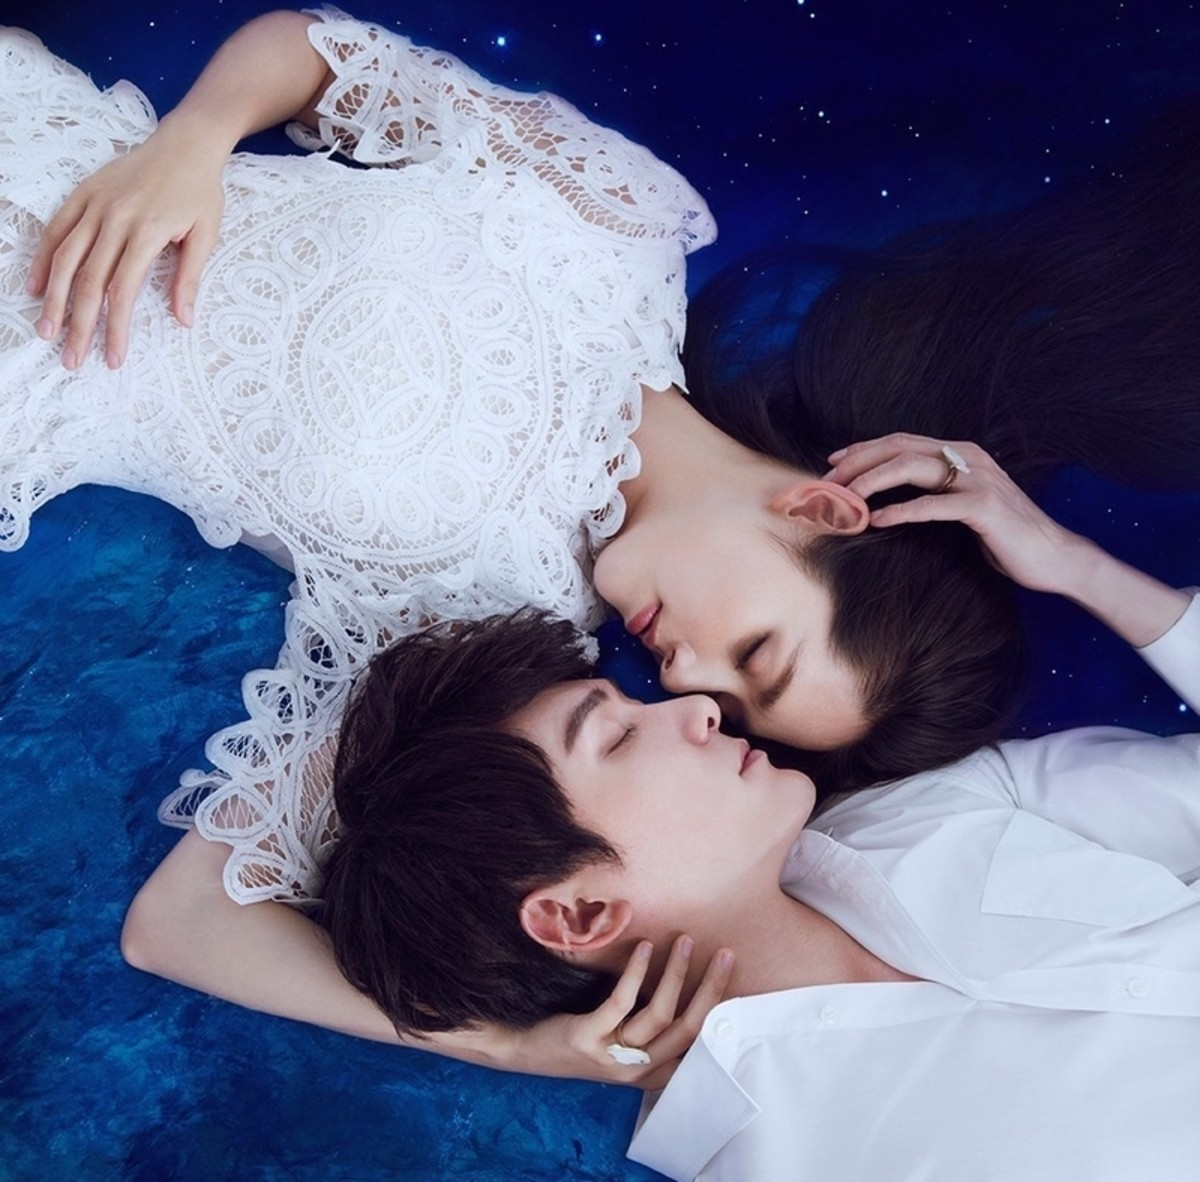 The Starry Night, The Starry Sea   The Top 11 Most Romantic Chinese Dramas